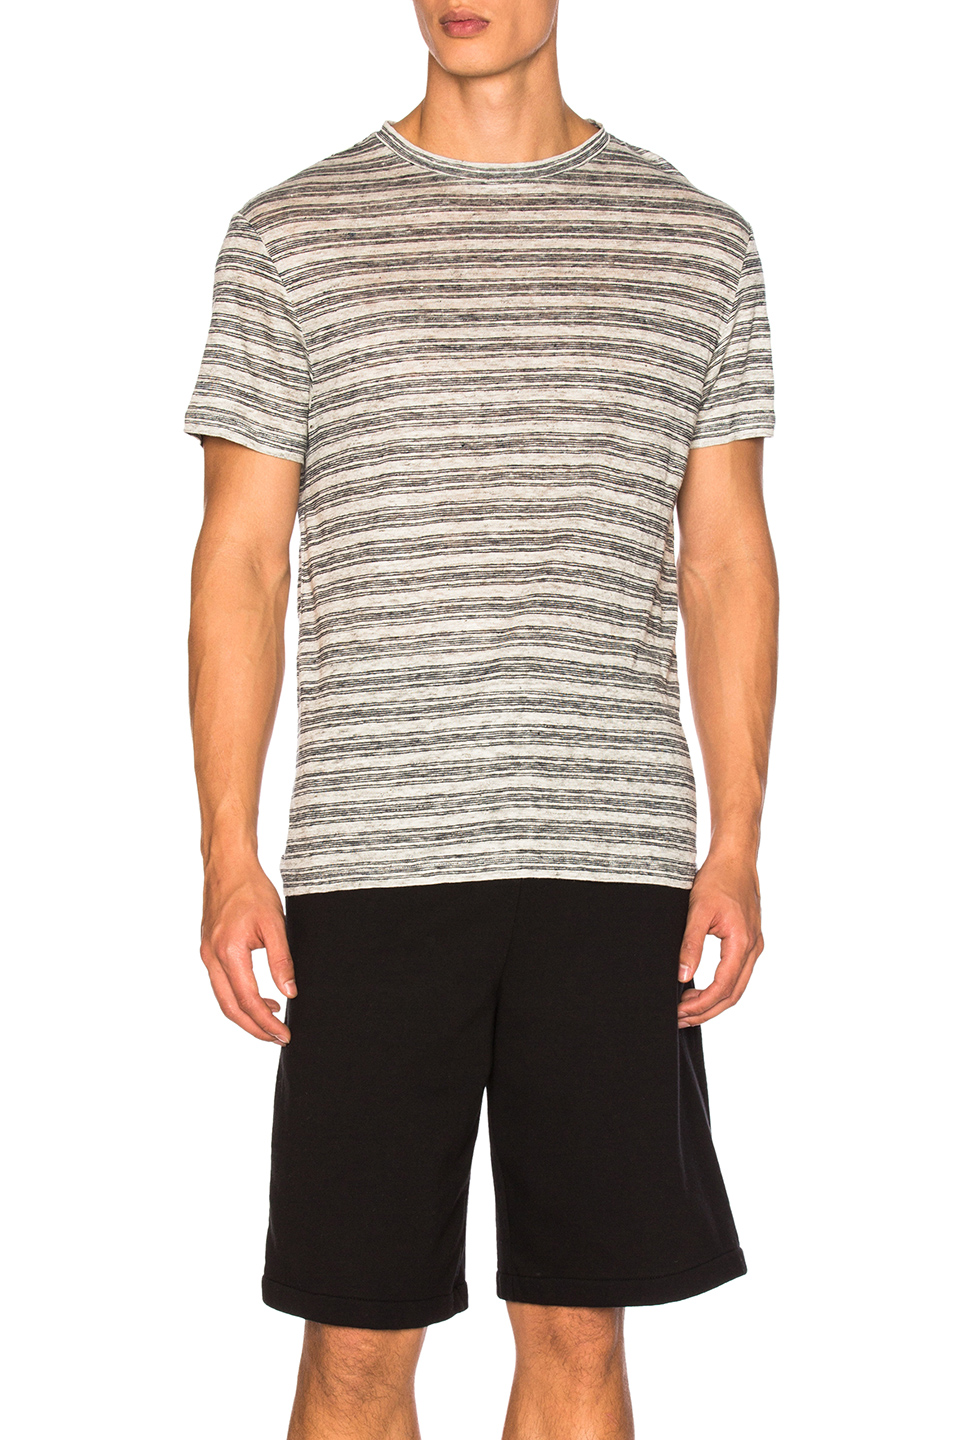 Alexander Wang Rib Insert Tee in Gray,Stripes